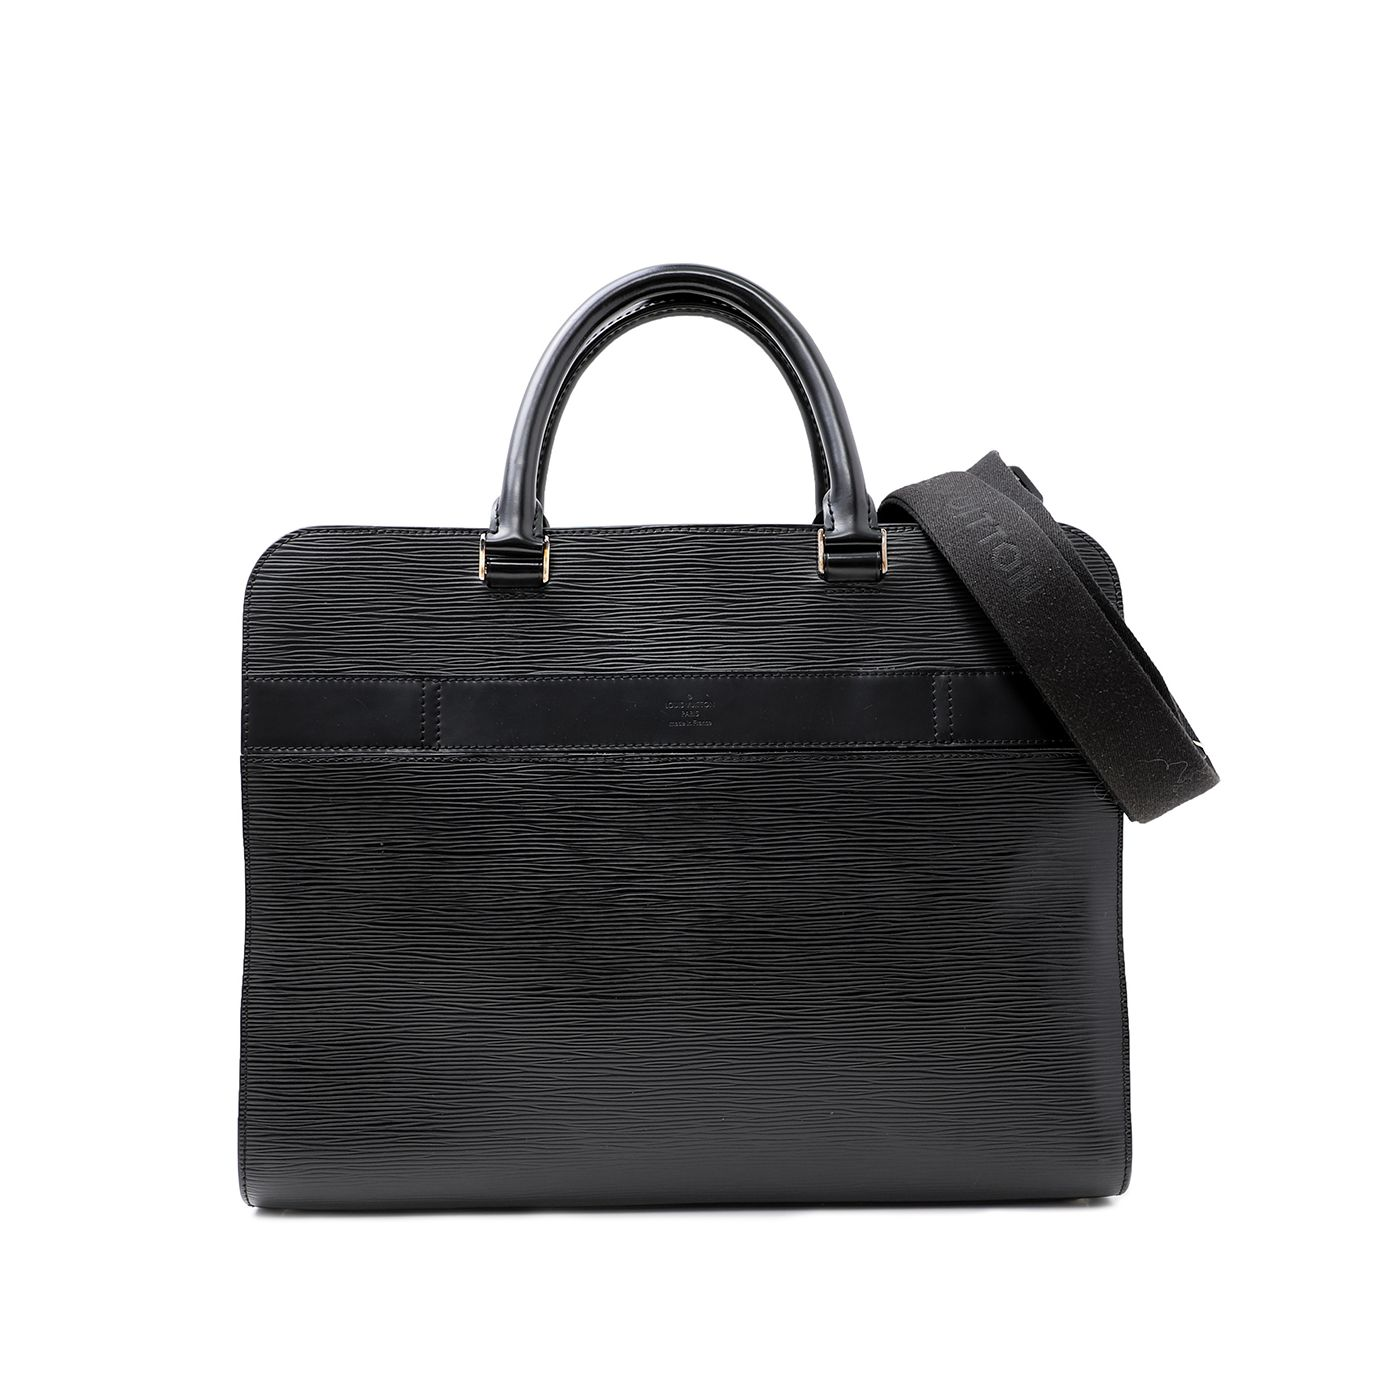 Louis Vuitton Noir Bassano Bag